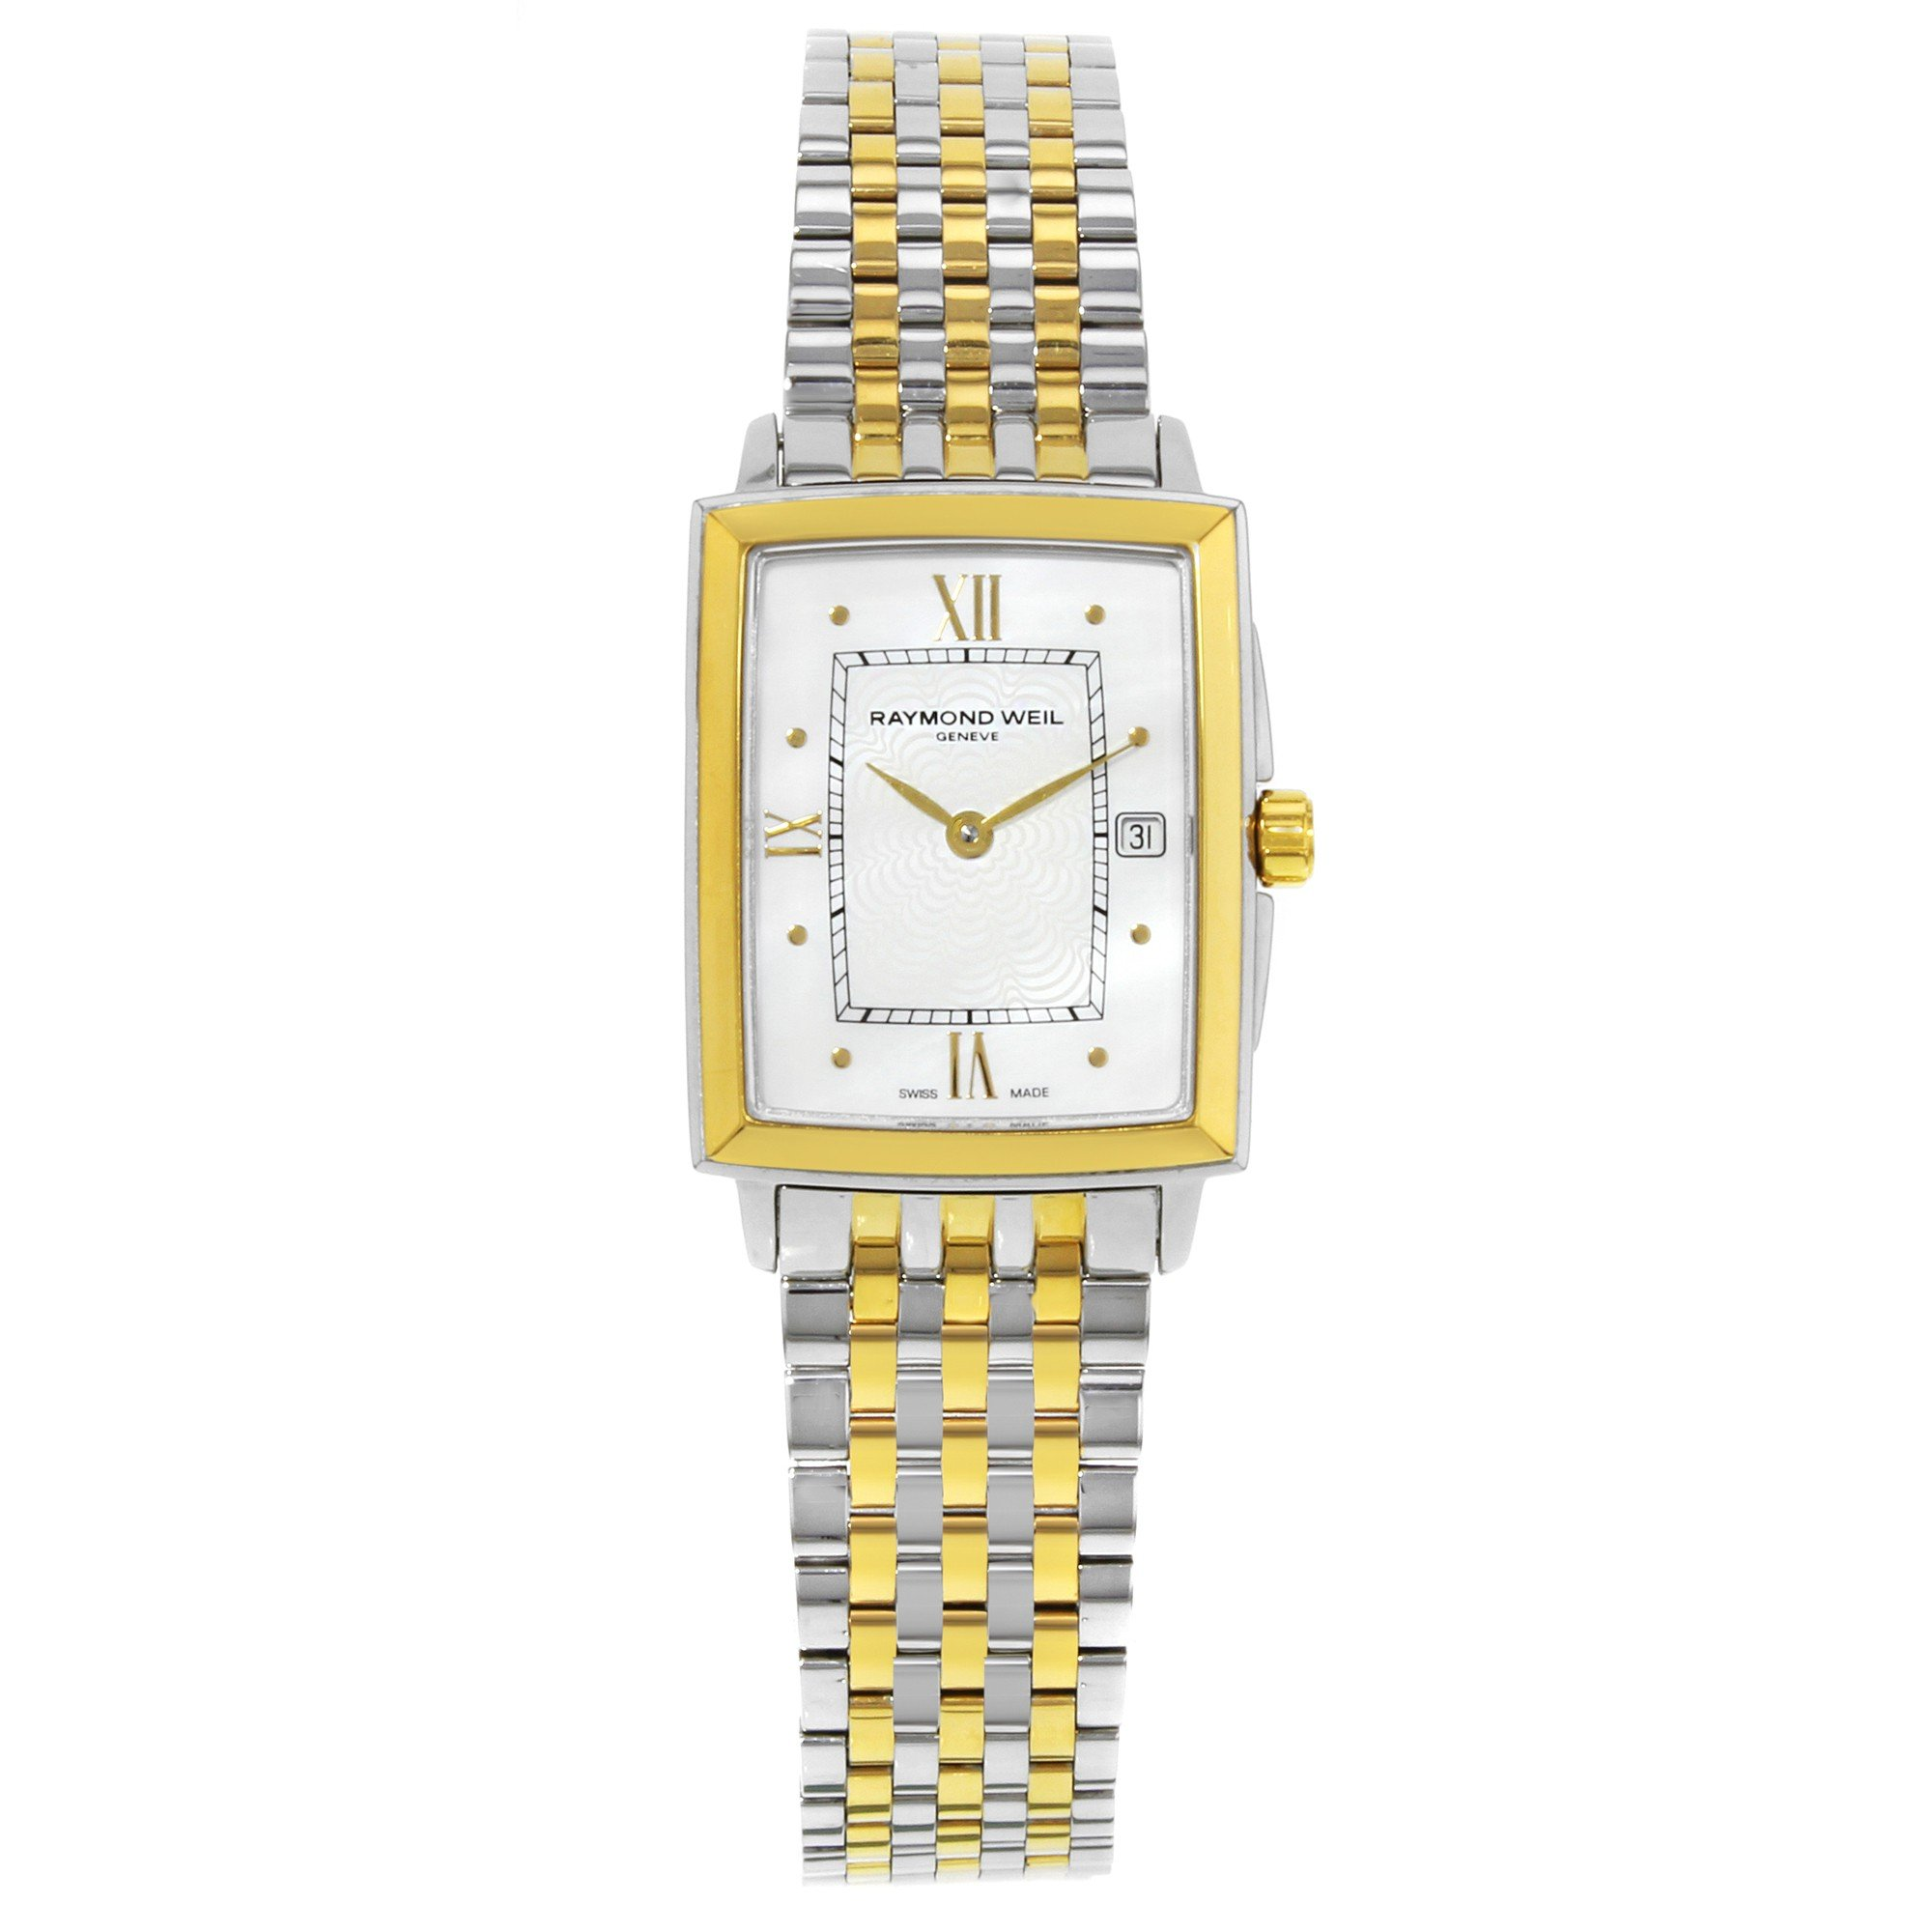 Raymond Weil Tradition Quartz Female Watch 5956-STP-00915 (Certified Pre-Owned)